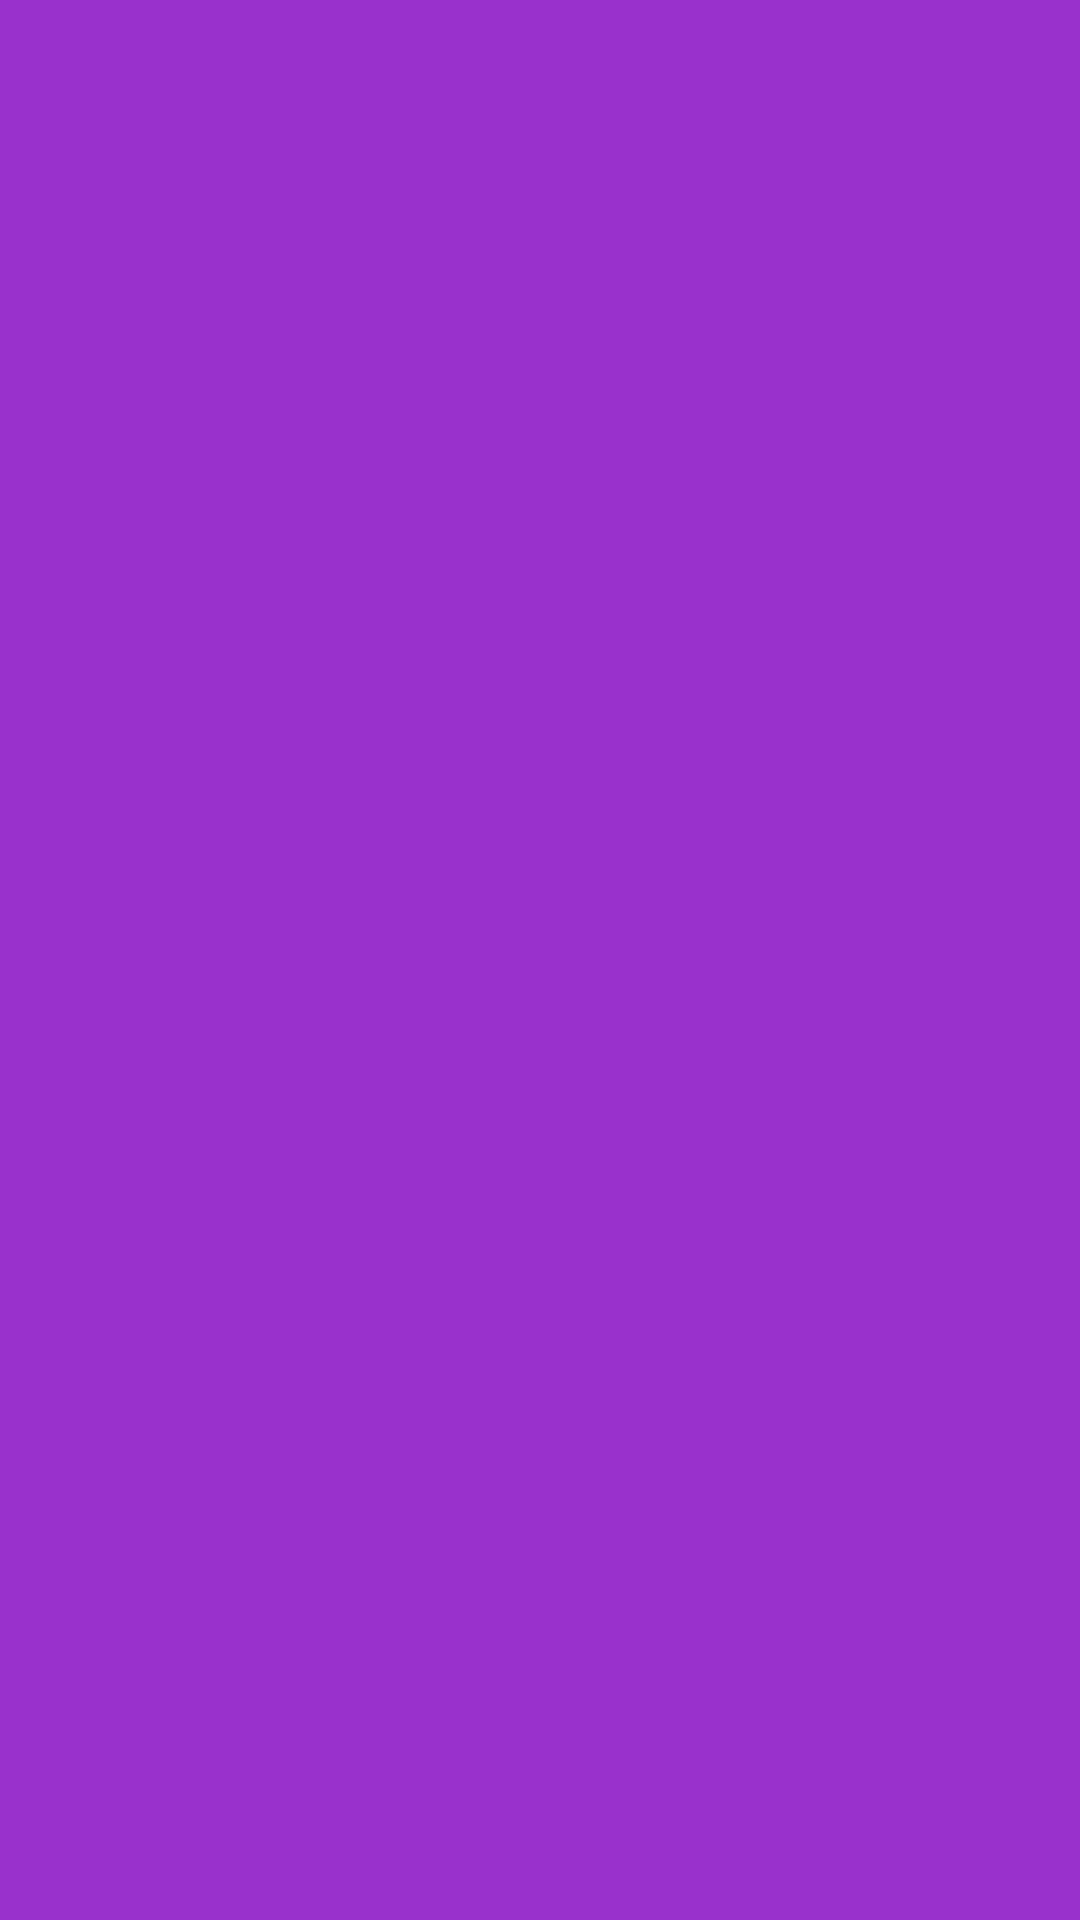 1080x1920 Dark Orchid Solid Color Background